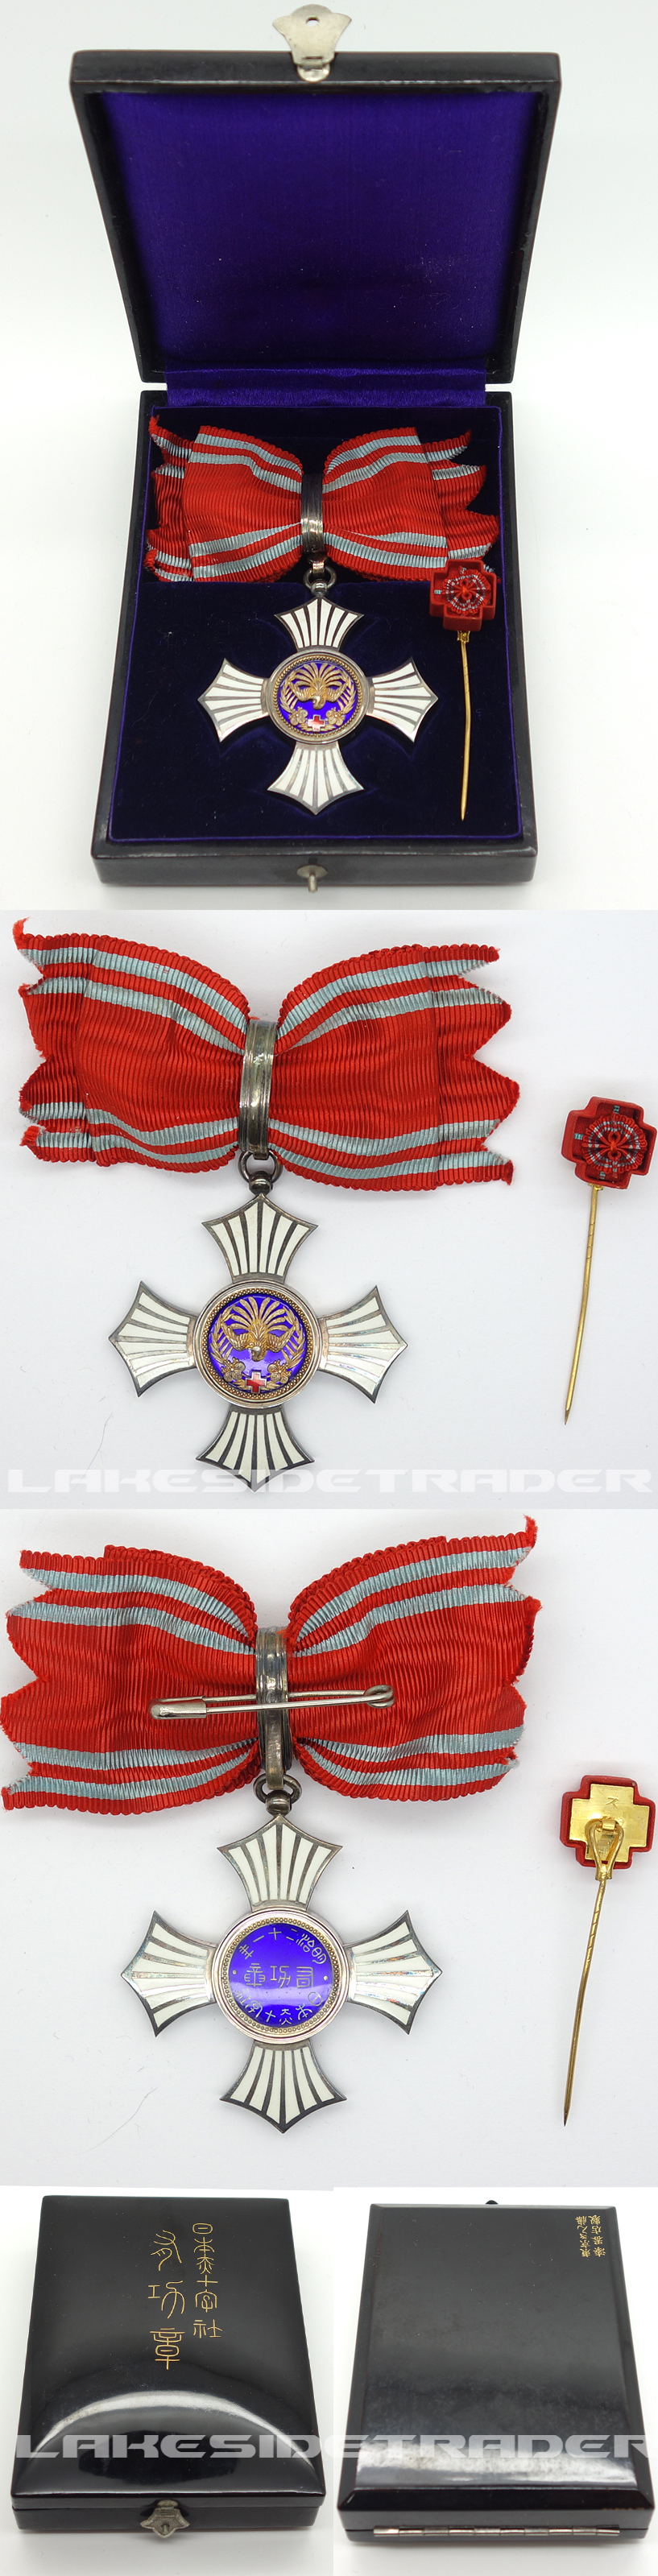 Cased Red Cross Order of Merit